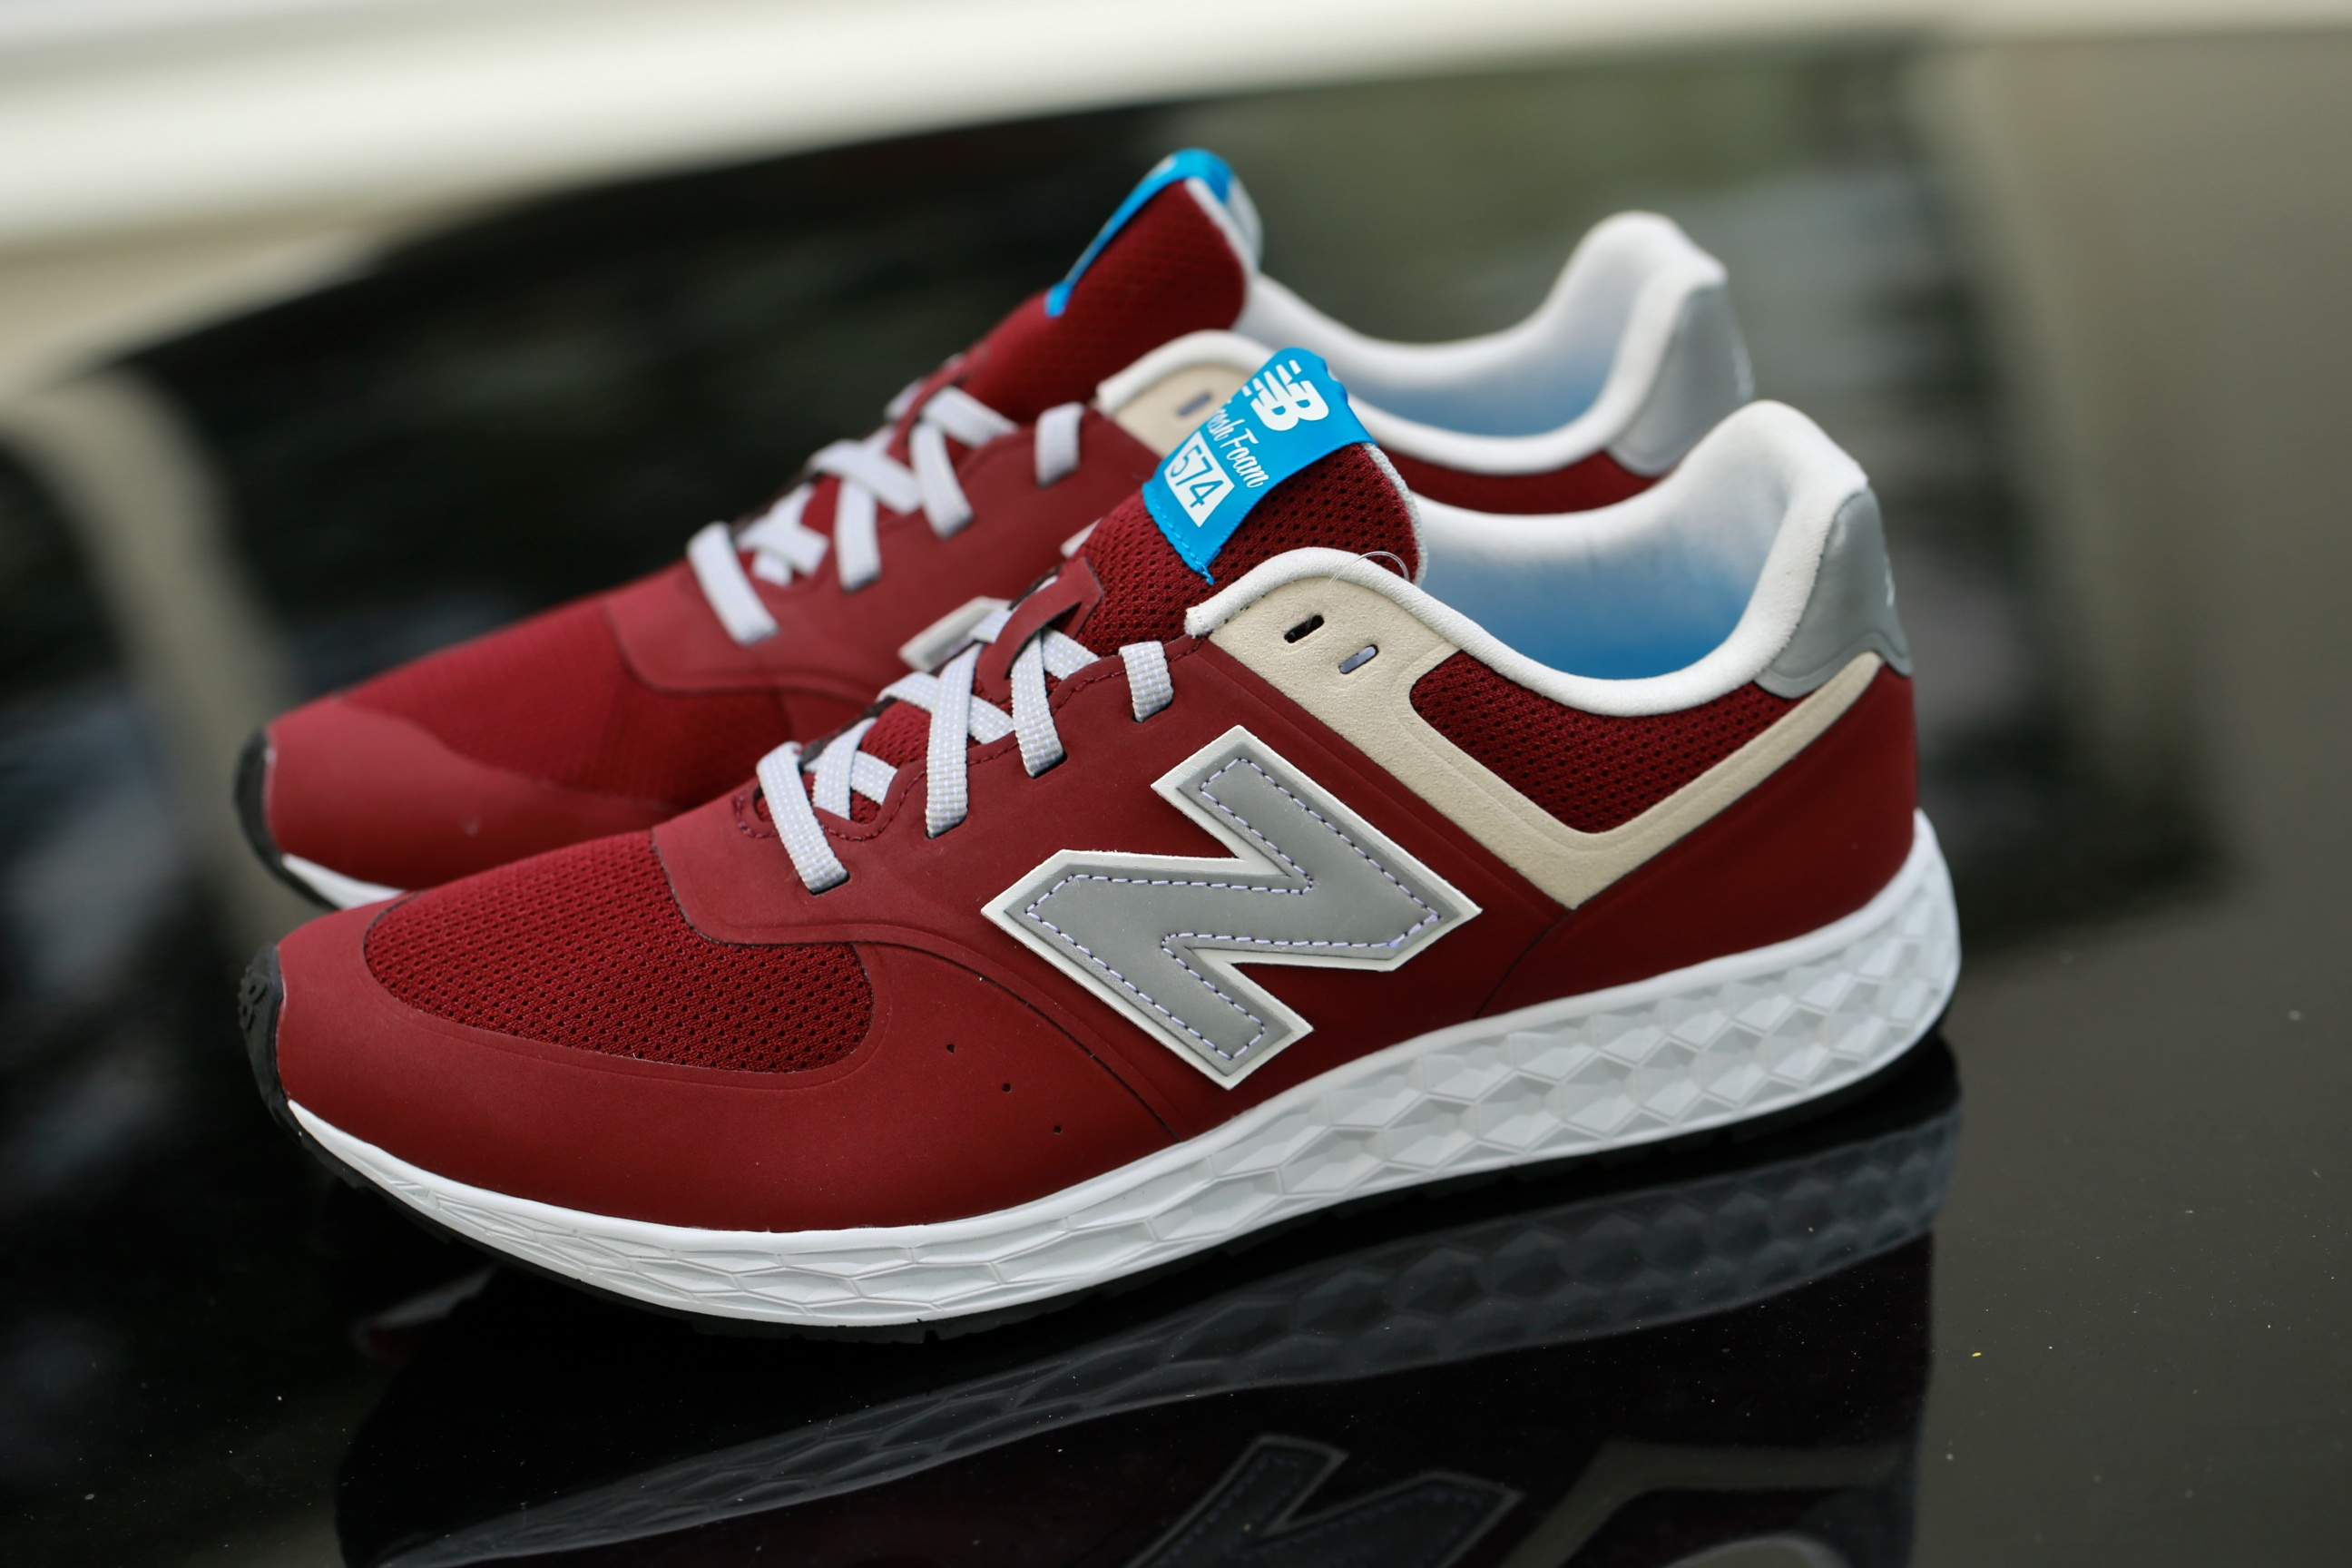 fresh foam new balance 574